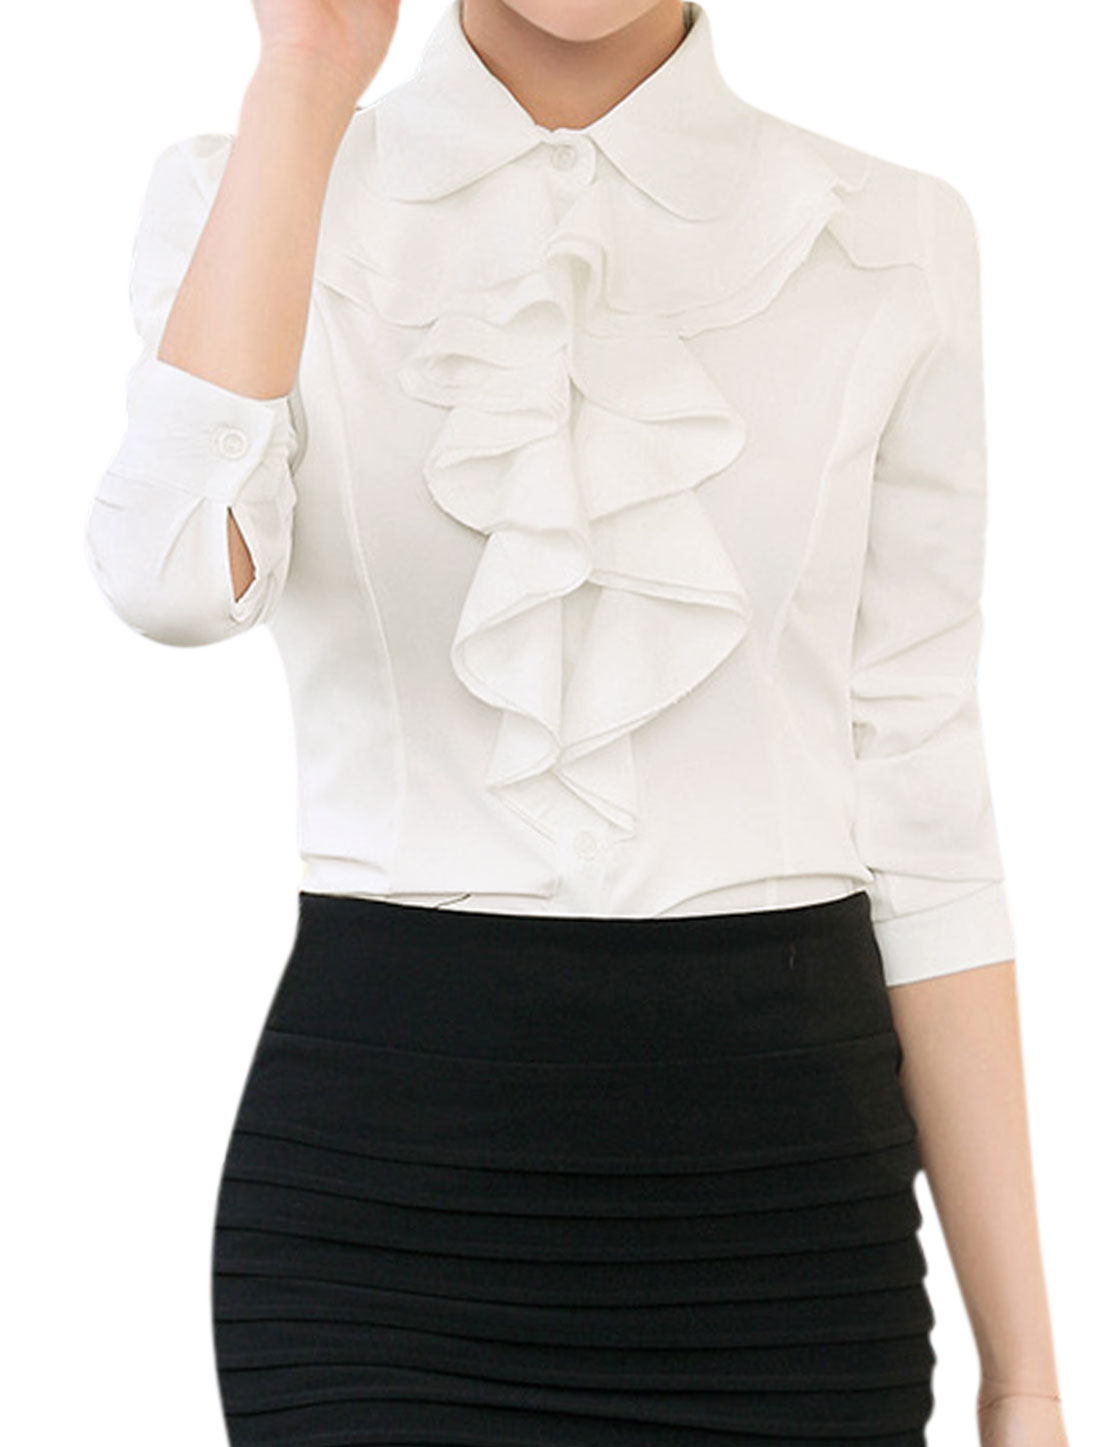 Ladies Collared Ruffled Slim Fit Button Up Shirt White M